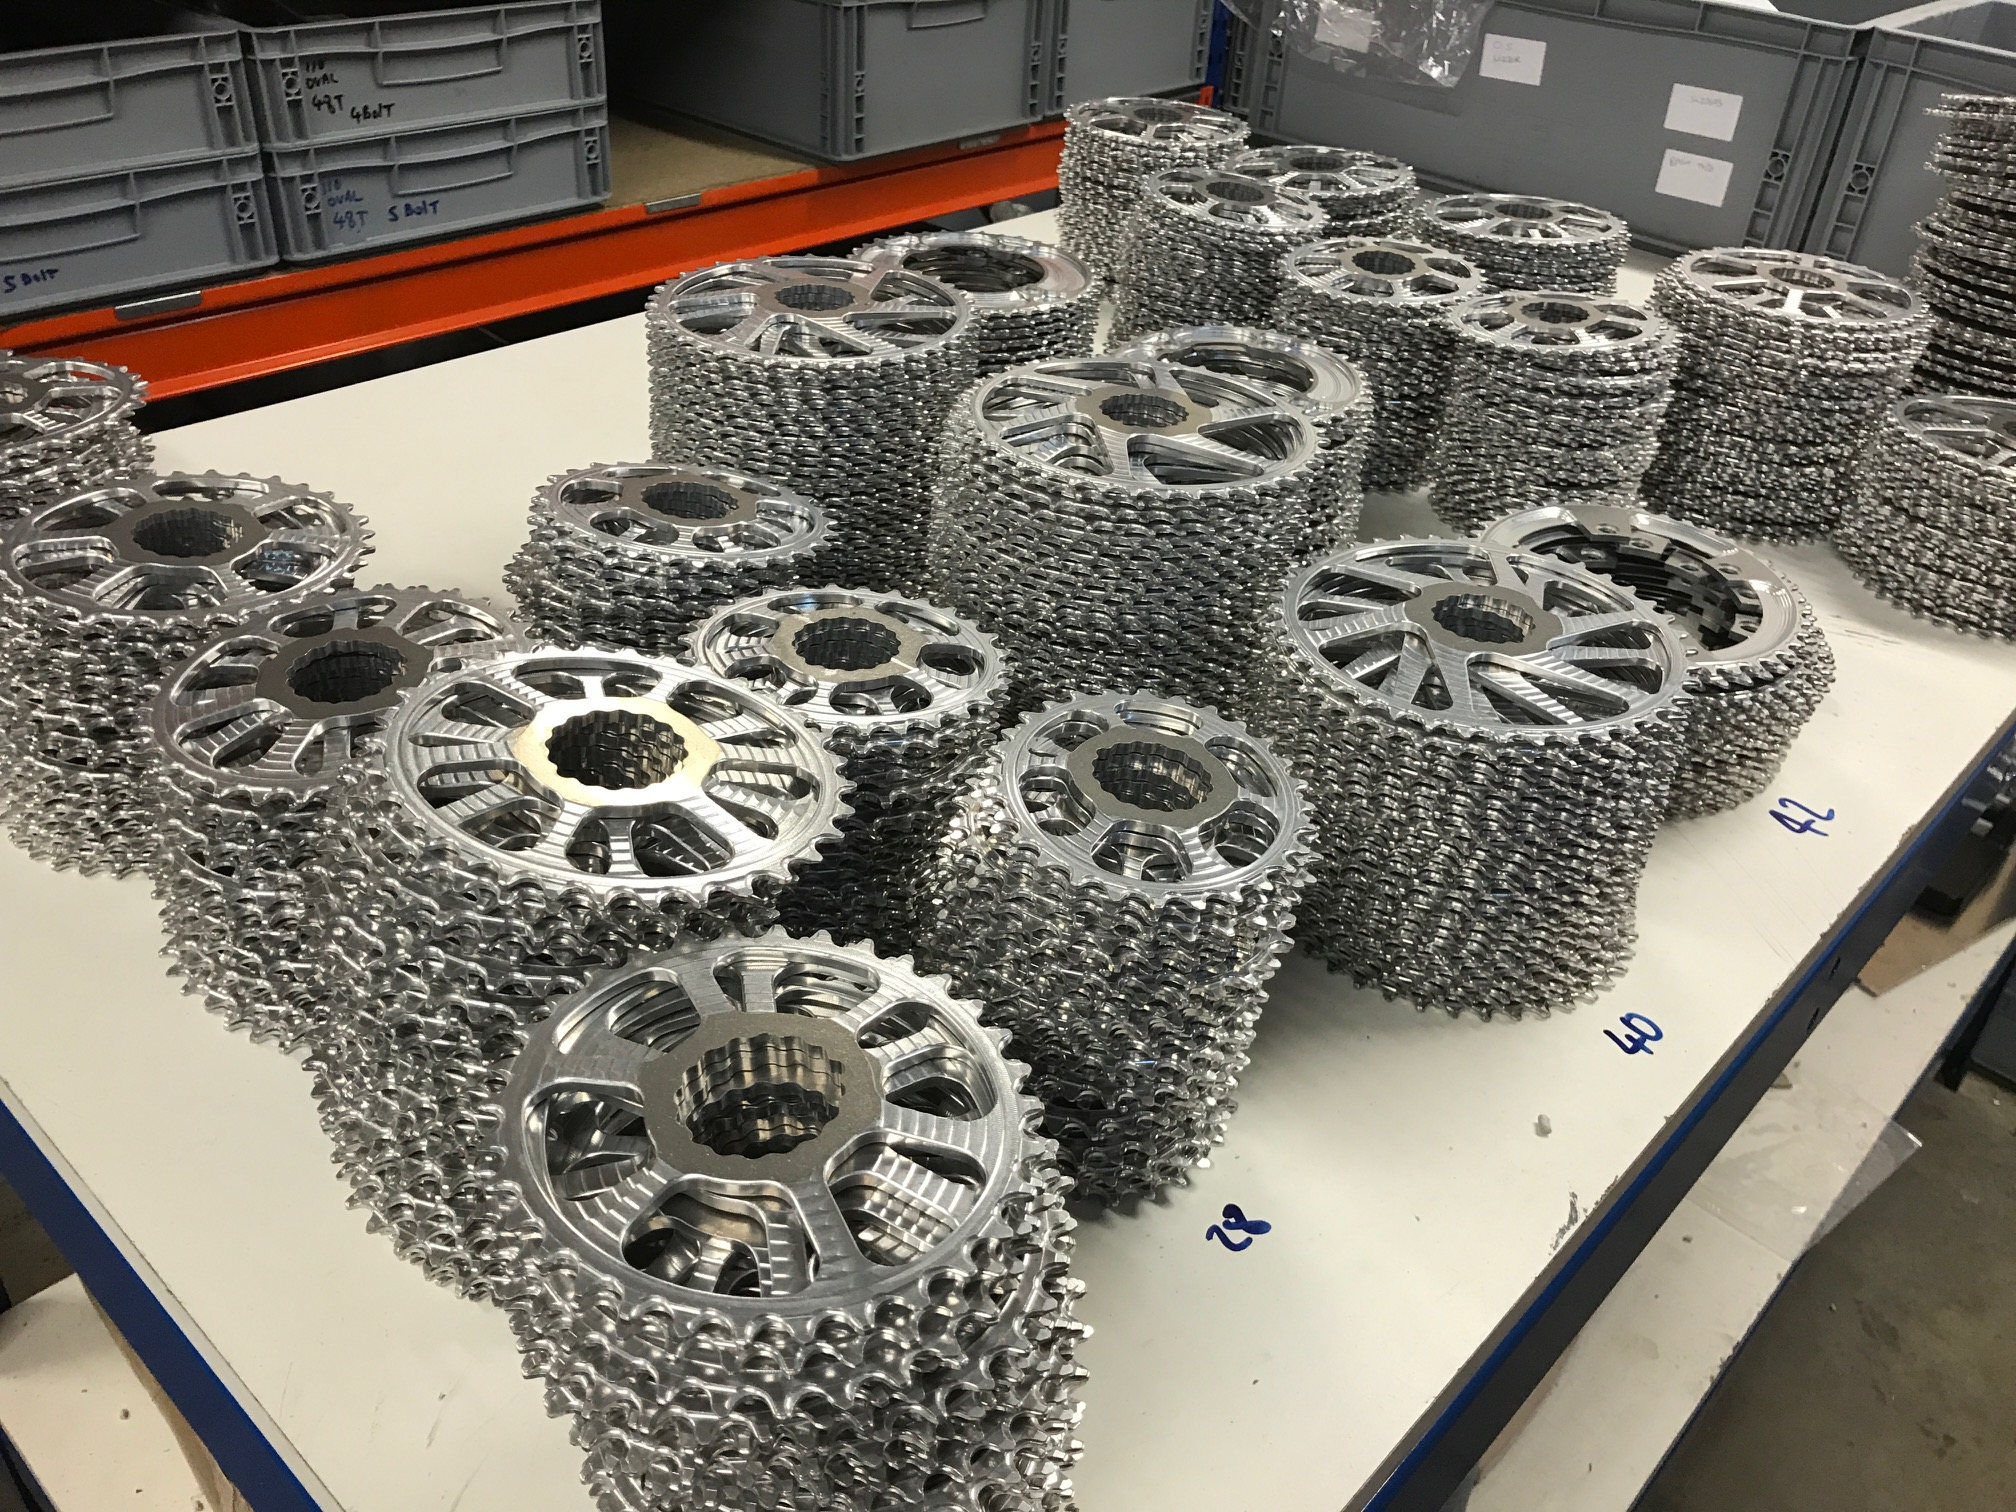 Volume ManufactureYour Design - We specialise in manufacturing CNC parts fast. Although we specialise in bicycle components, we have clients across a wide range of industries. We are happy to quote on any drawing/3D model you are looking to manufacture - send us your drawings for a quote.See our gallery for a range of parts we have made